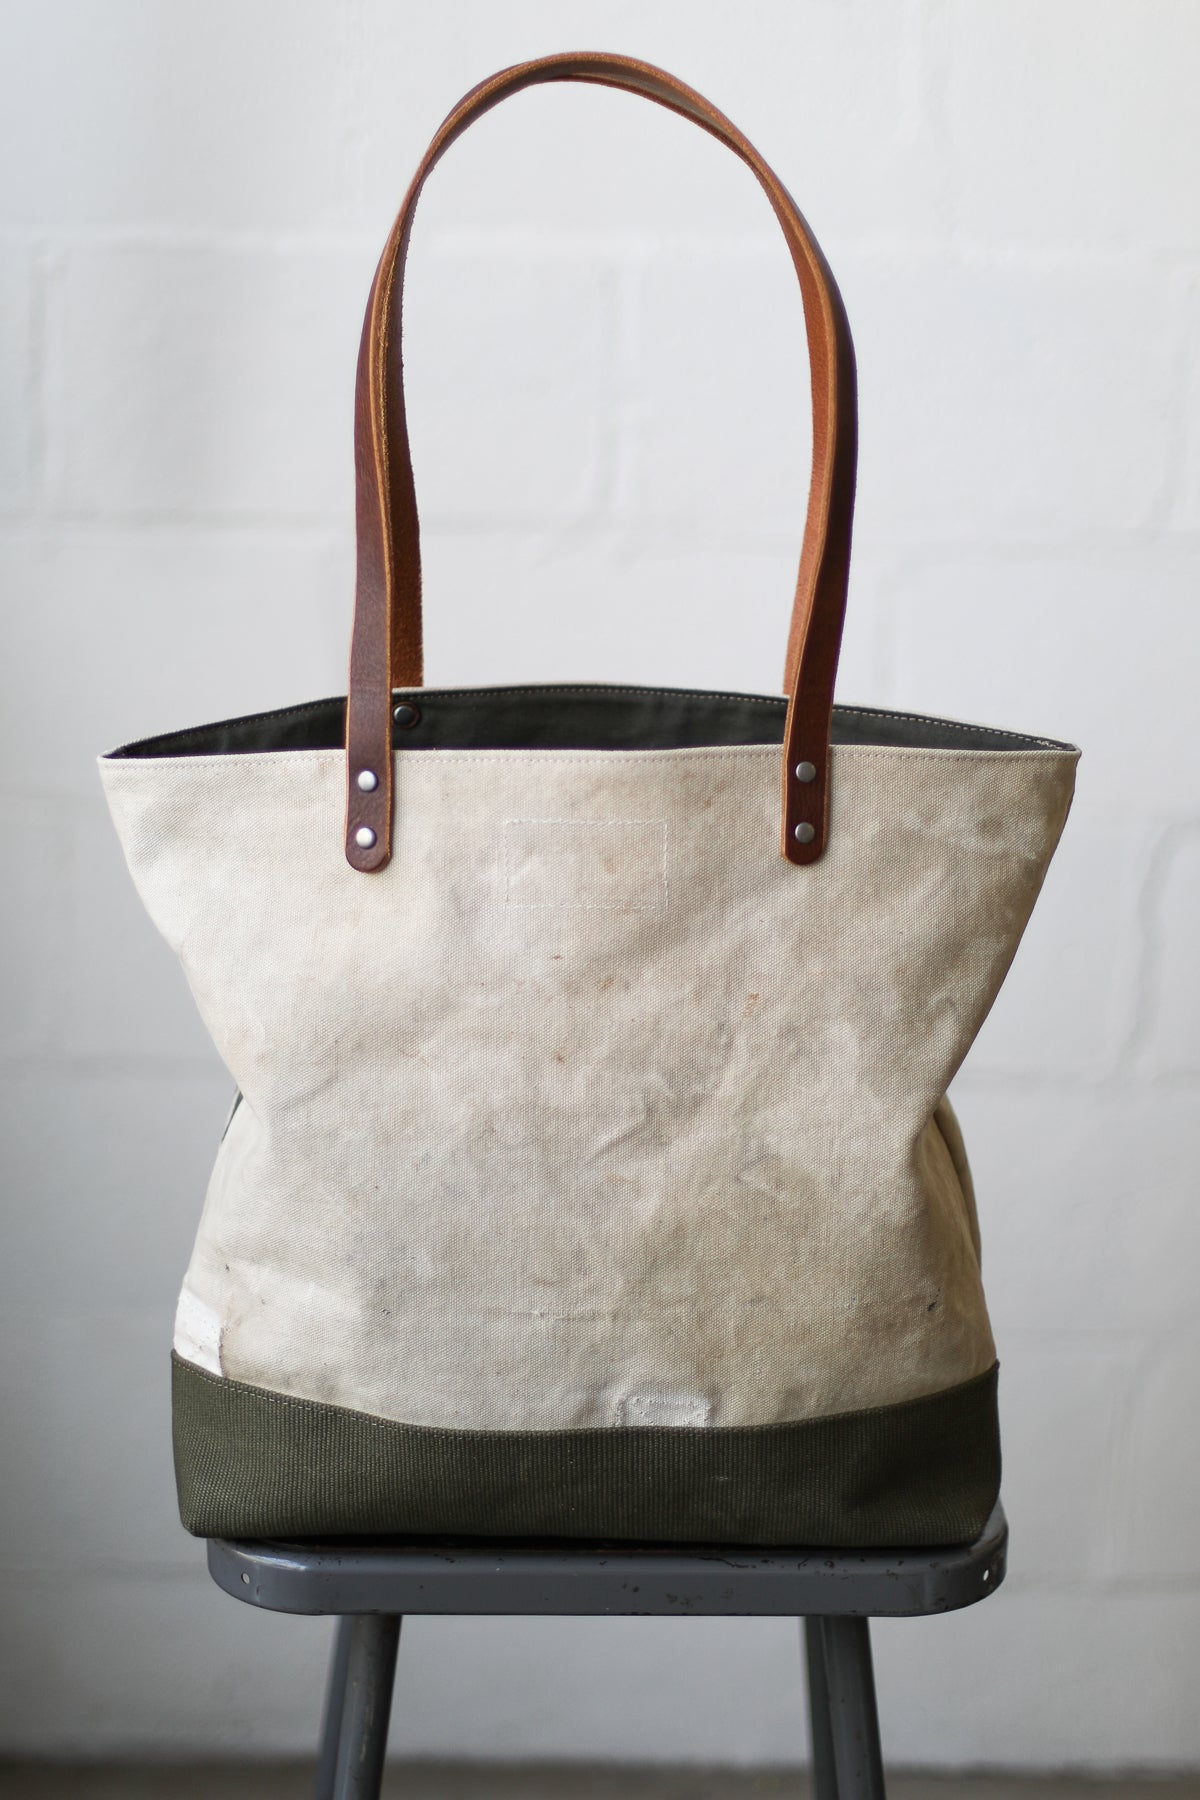 1940's era Salvaged USN Canvas Tote Bag